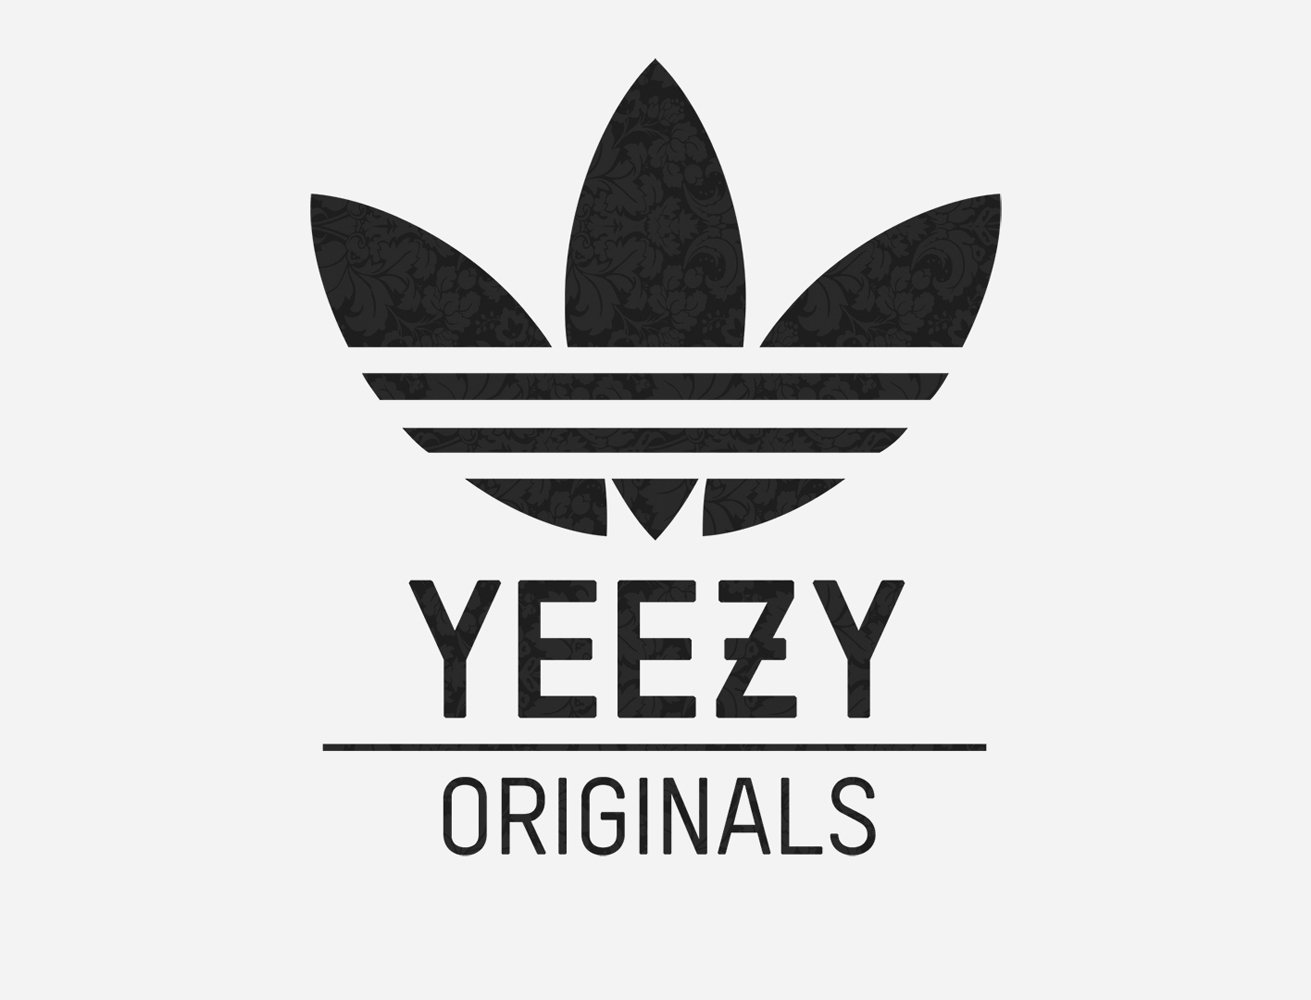 yeezy logo  yeezy symbol  meaning  history and evolution